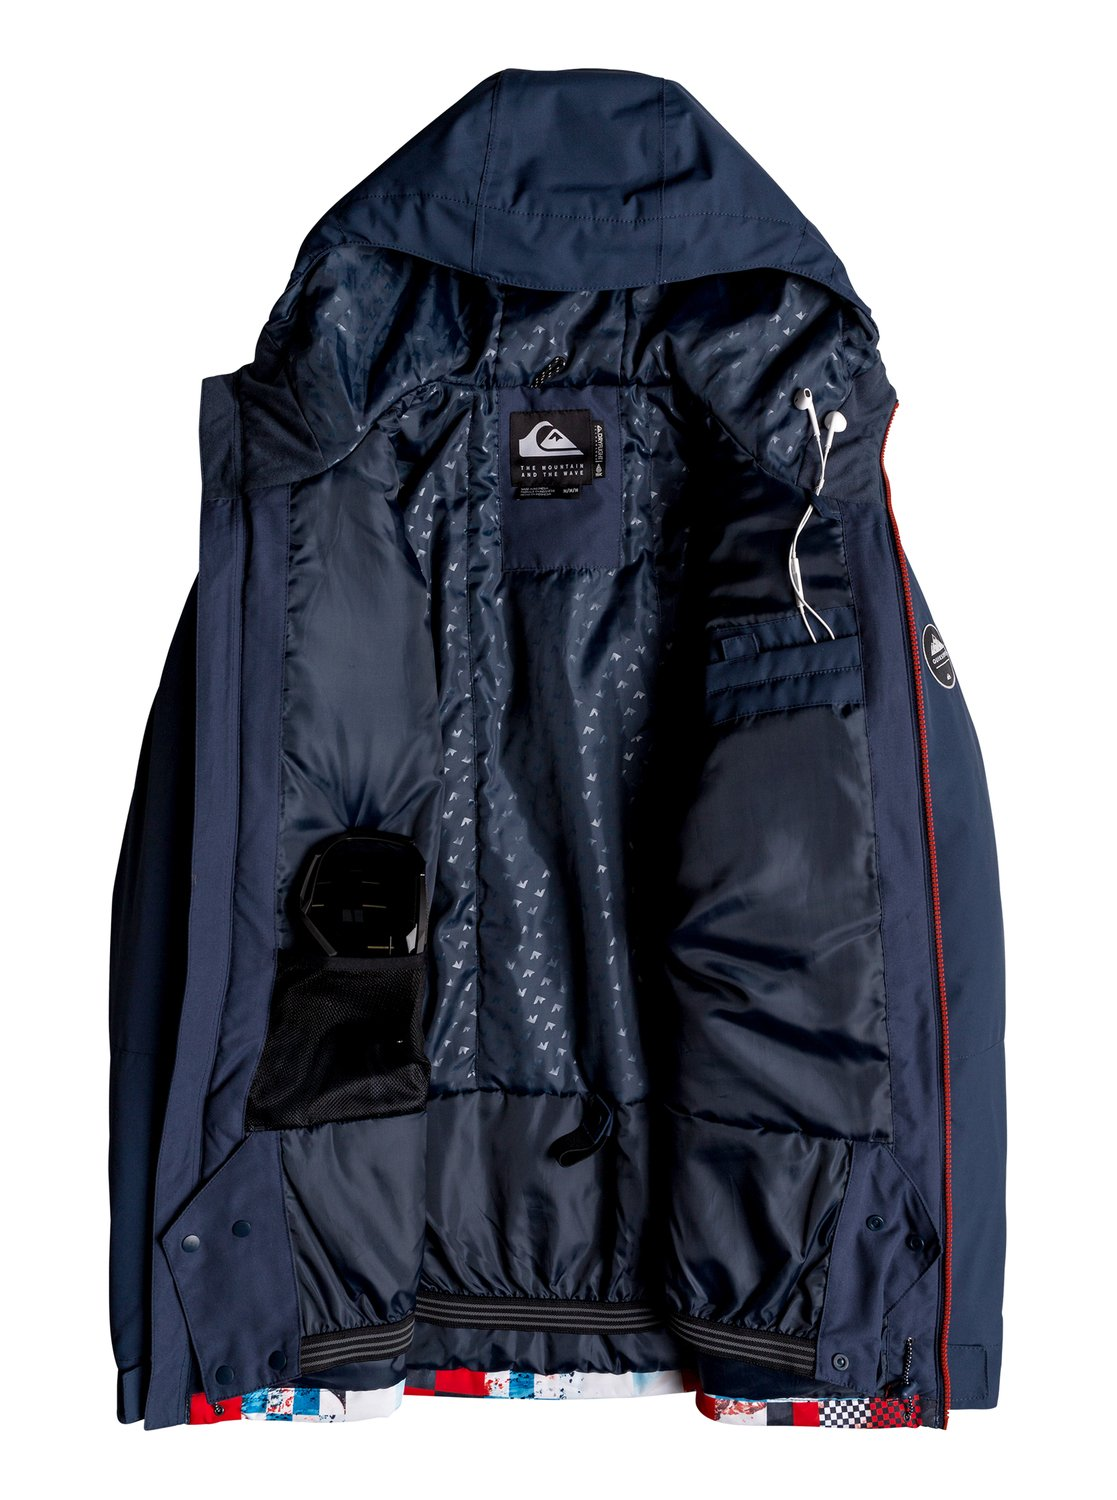 Quiksilver™ Mission Block - Snow Jacket for Men EQYTJ03187   eBay 7385df5c51